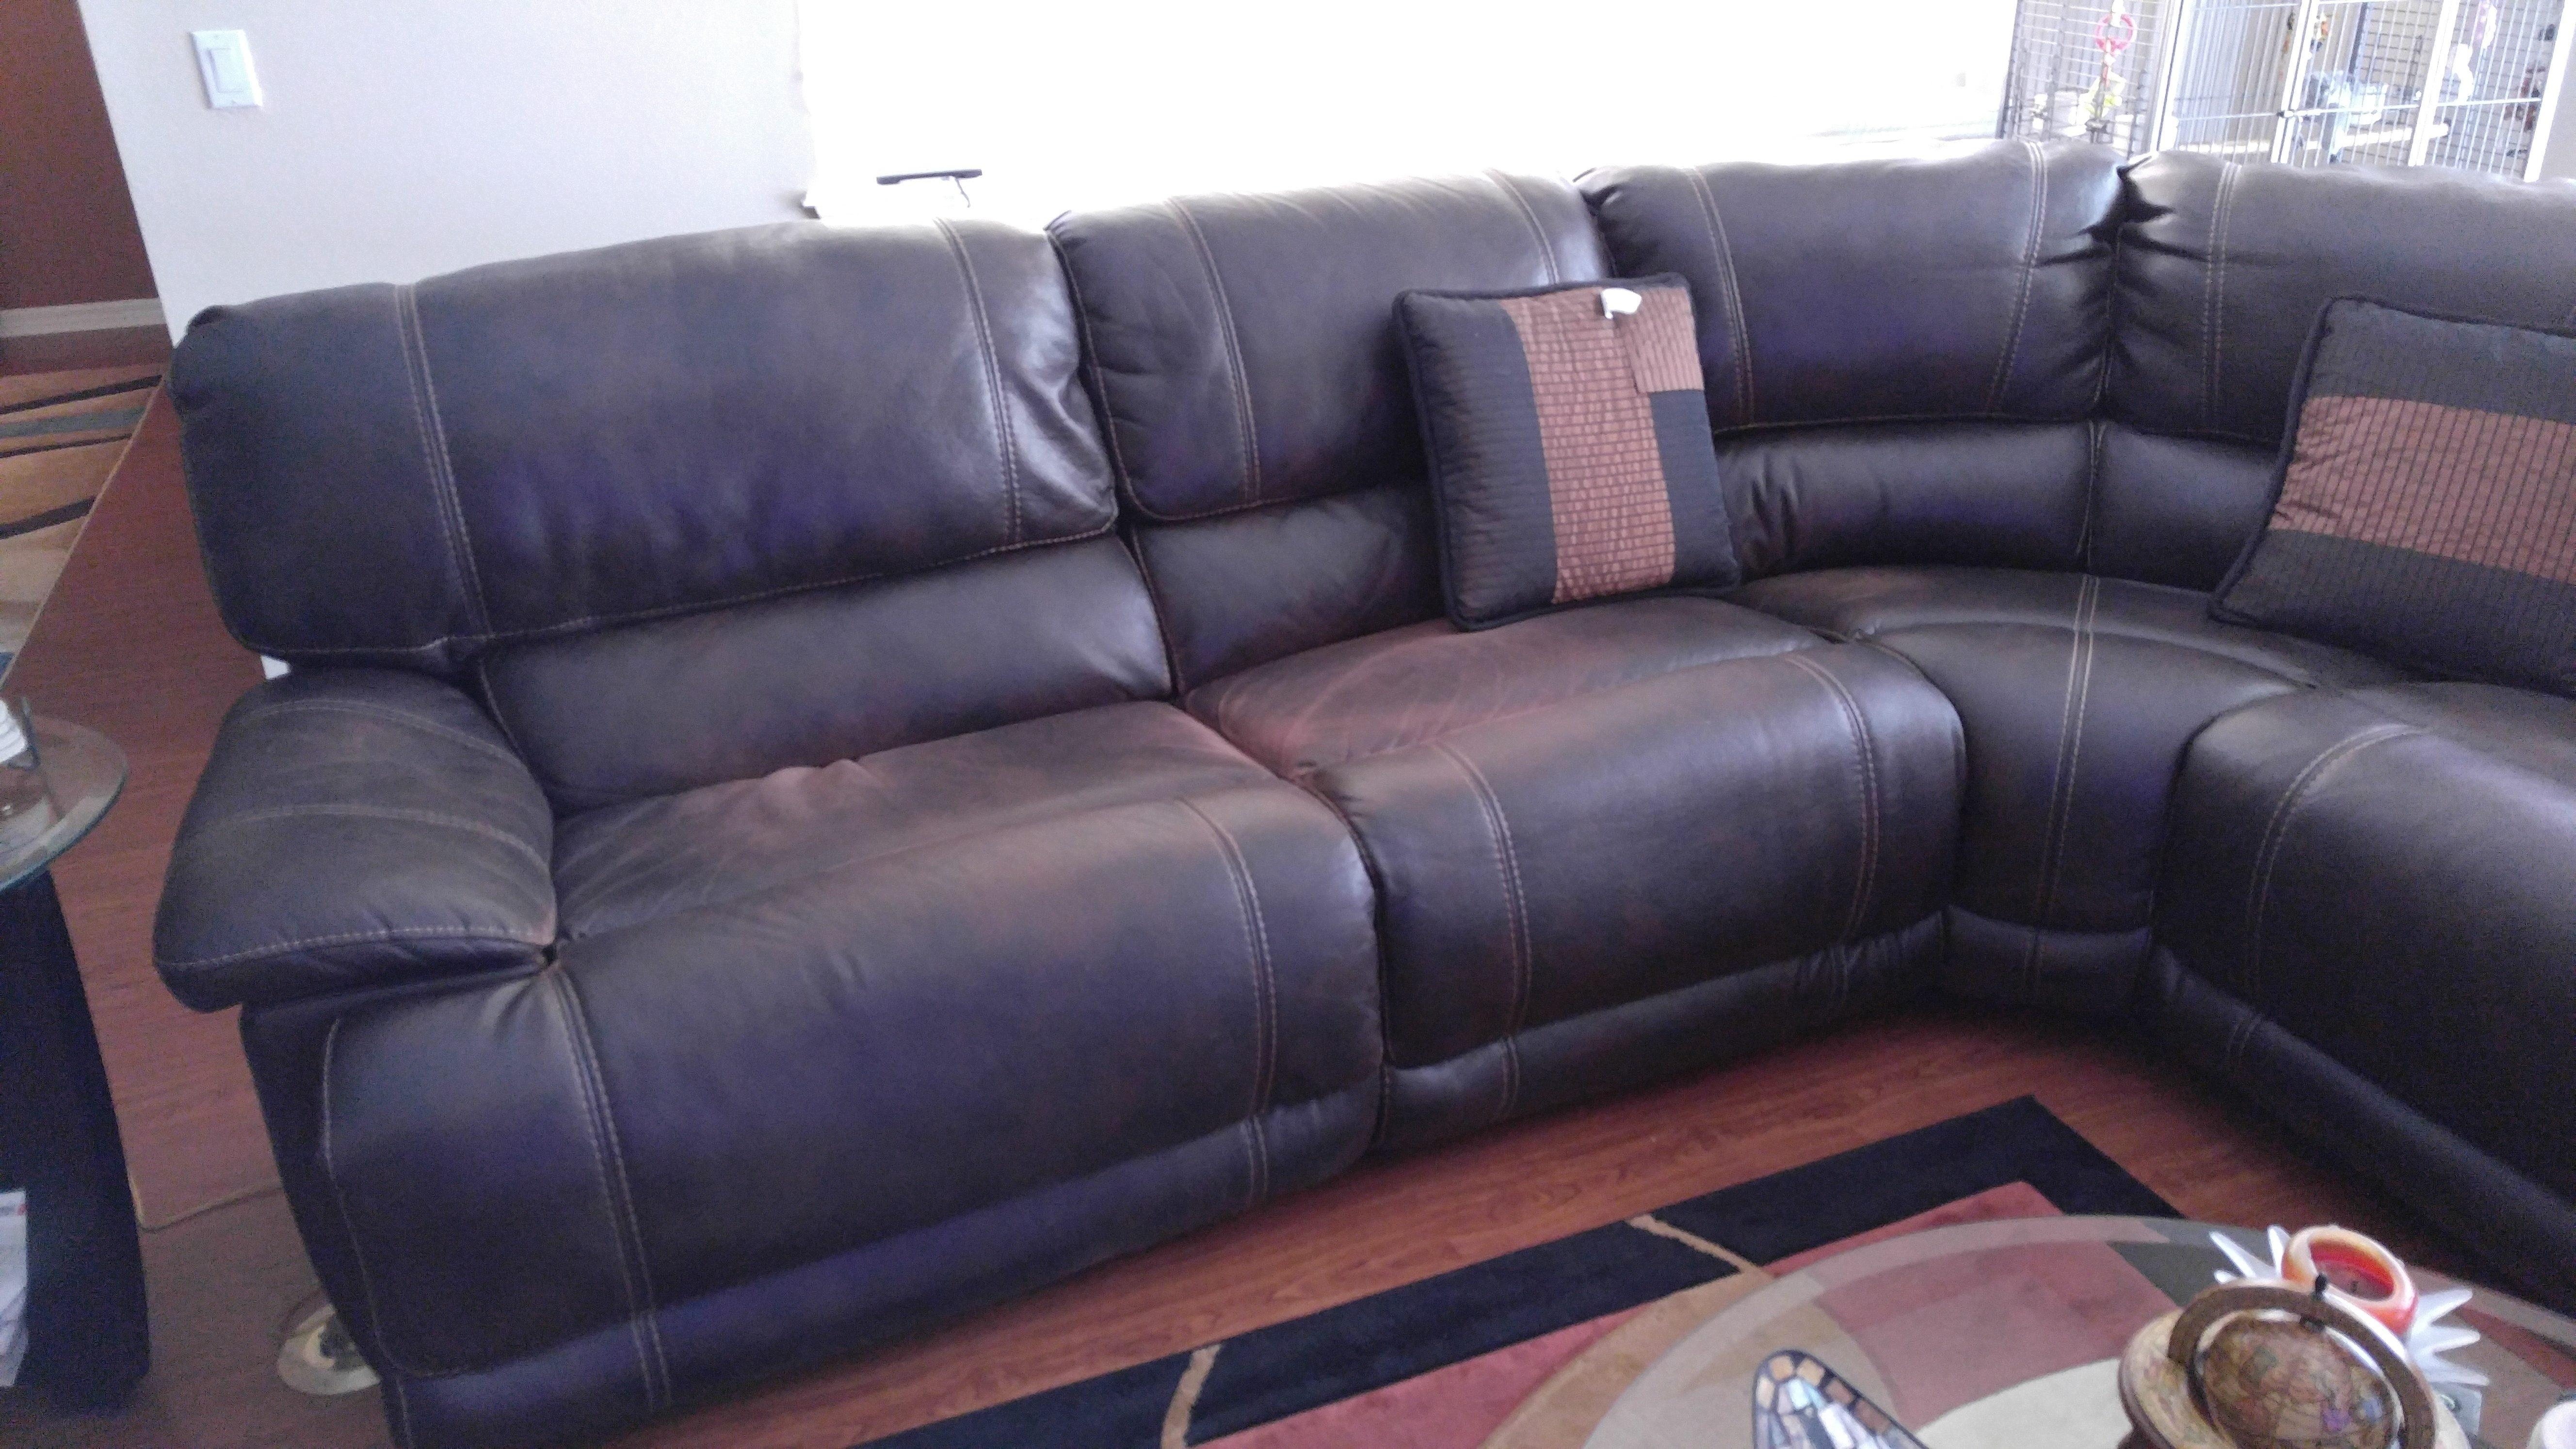 Purple Upholstery Stain Remover Crypton Pet Cp Each H0001 ~ Idolza Inside Kanes Sectional Sofas (View 7 of 10)